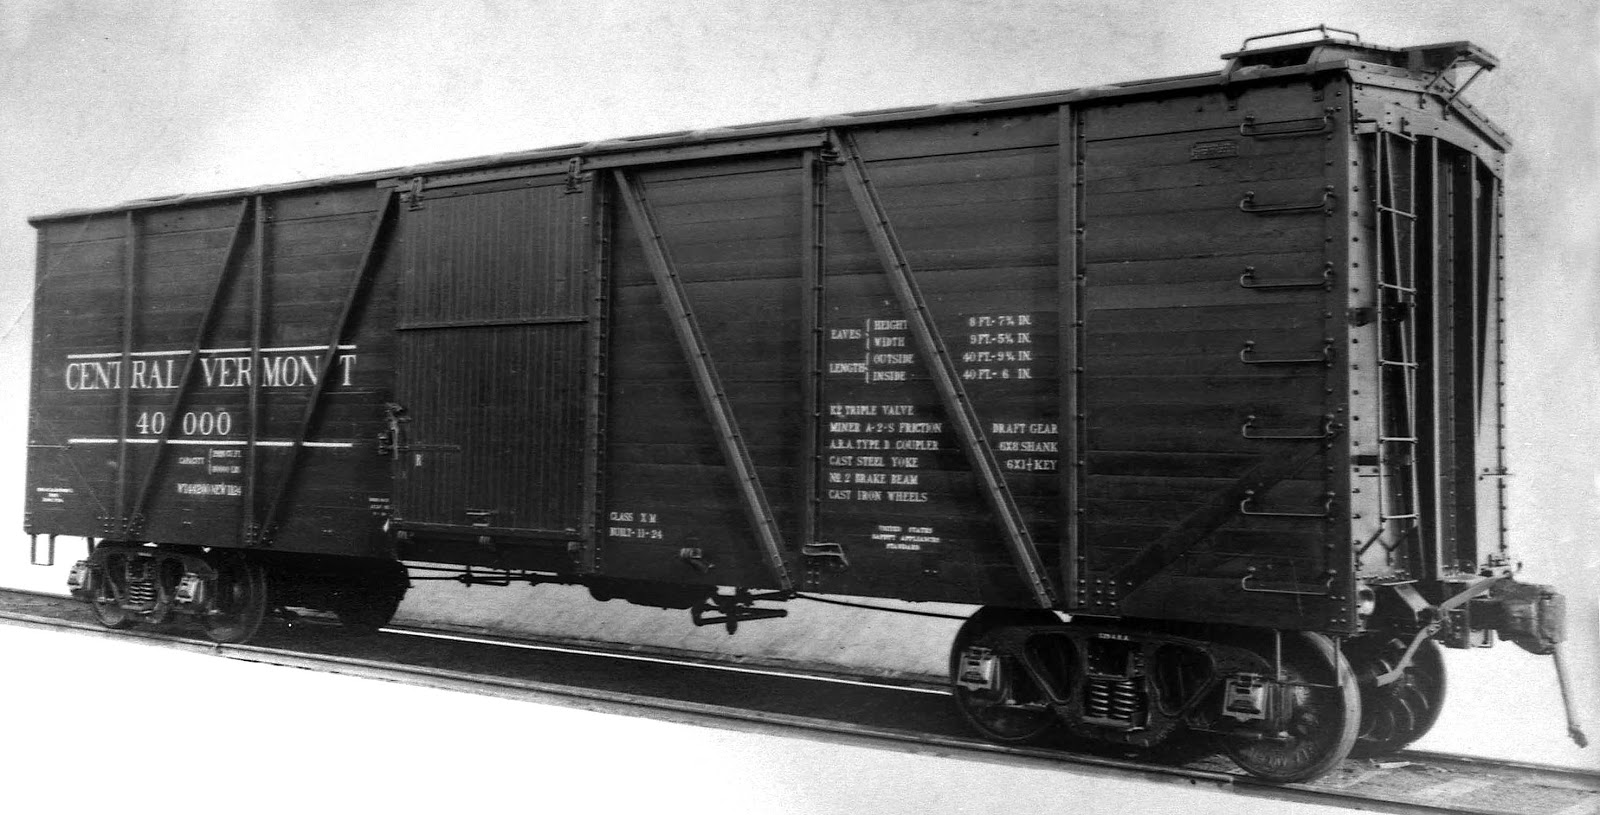 Modeling Steam Era Freight Cars: Central Vermont 40,000